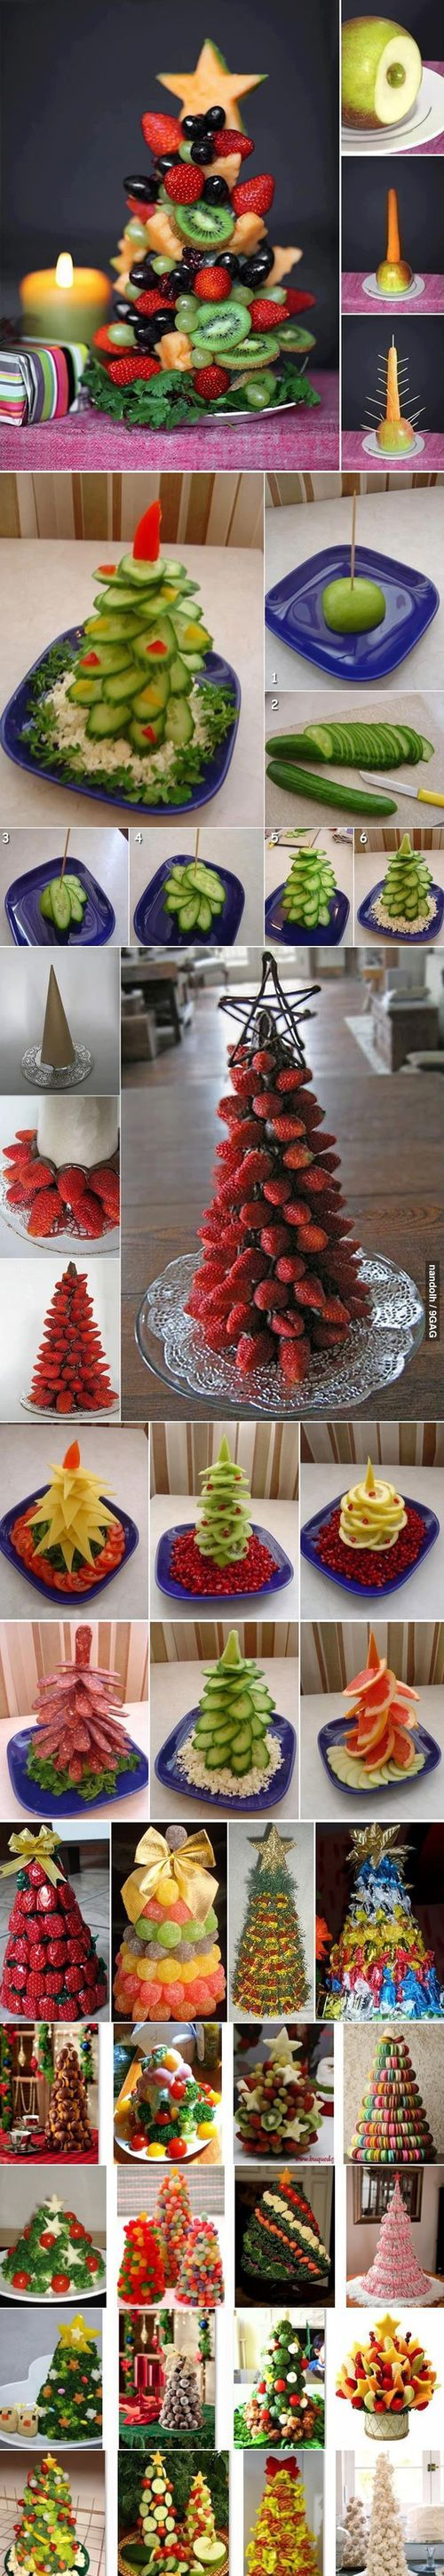 7 Christmas Trees That Are Not At All What You'd Expect http://www.gossipness.com/lifestyle/7-christmas-trees-that-are-not-at-all-what-youd-expect-715.html